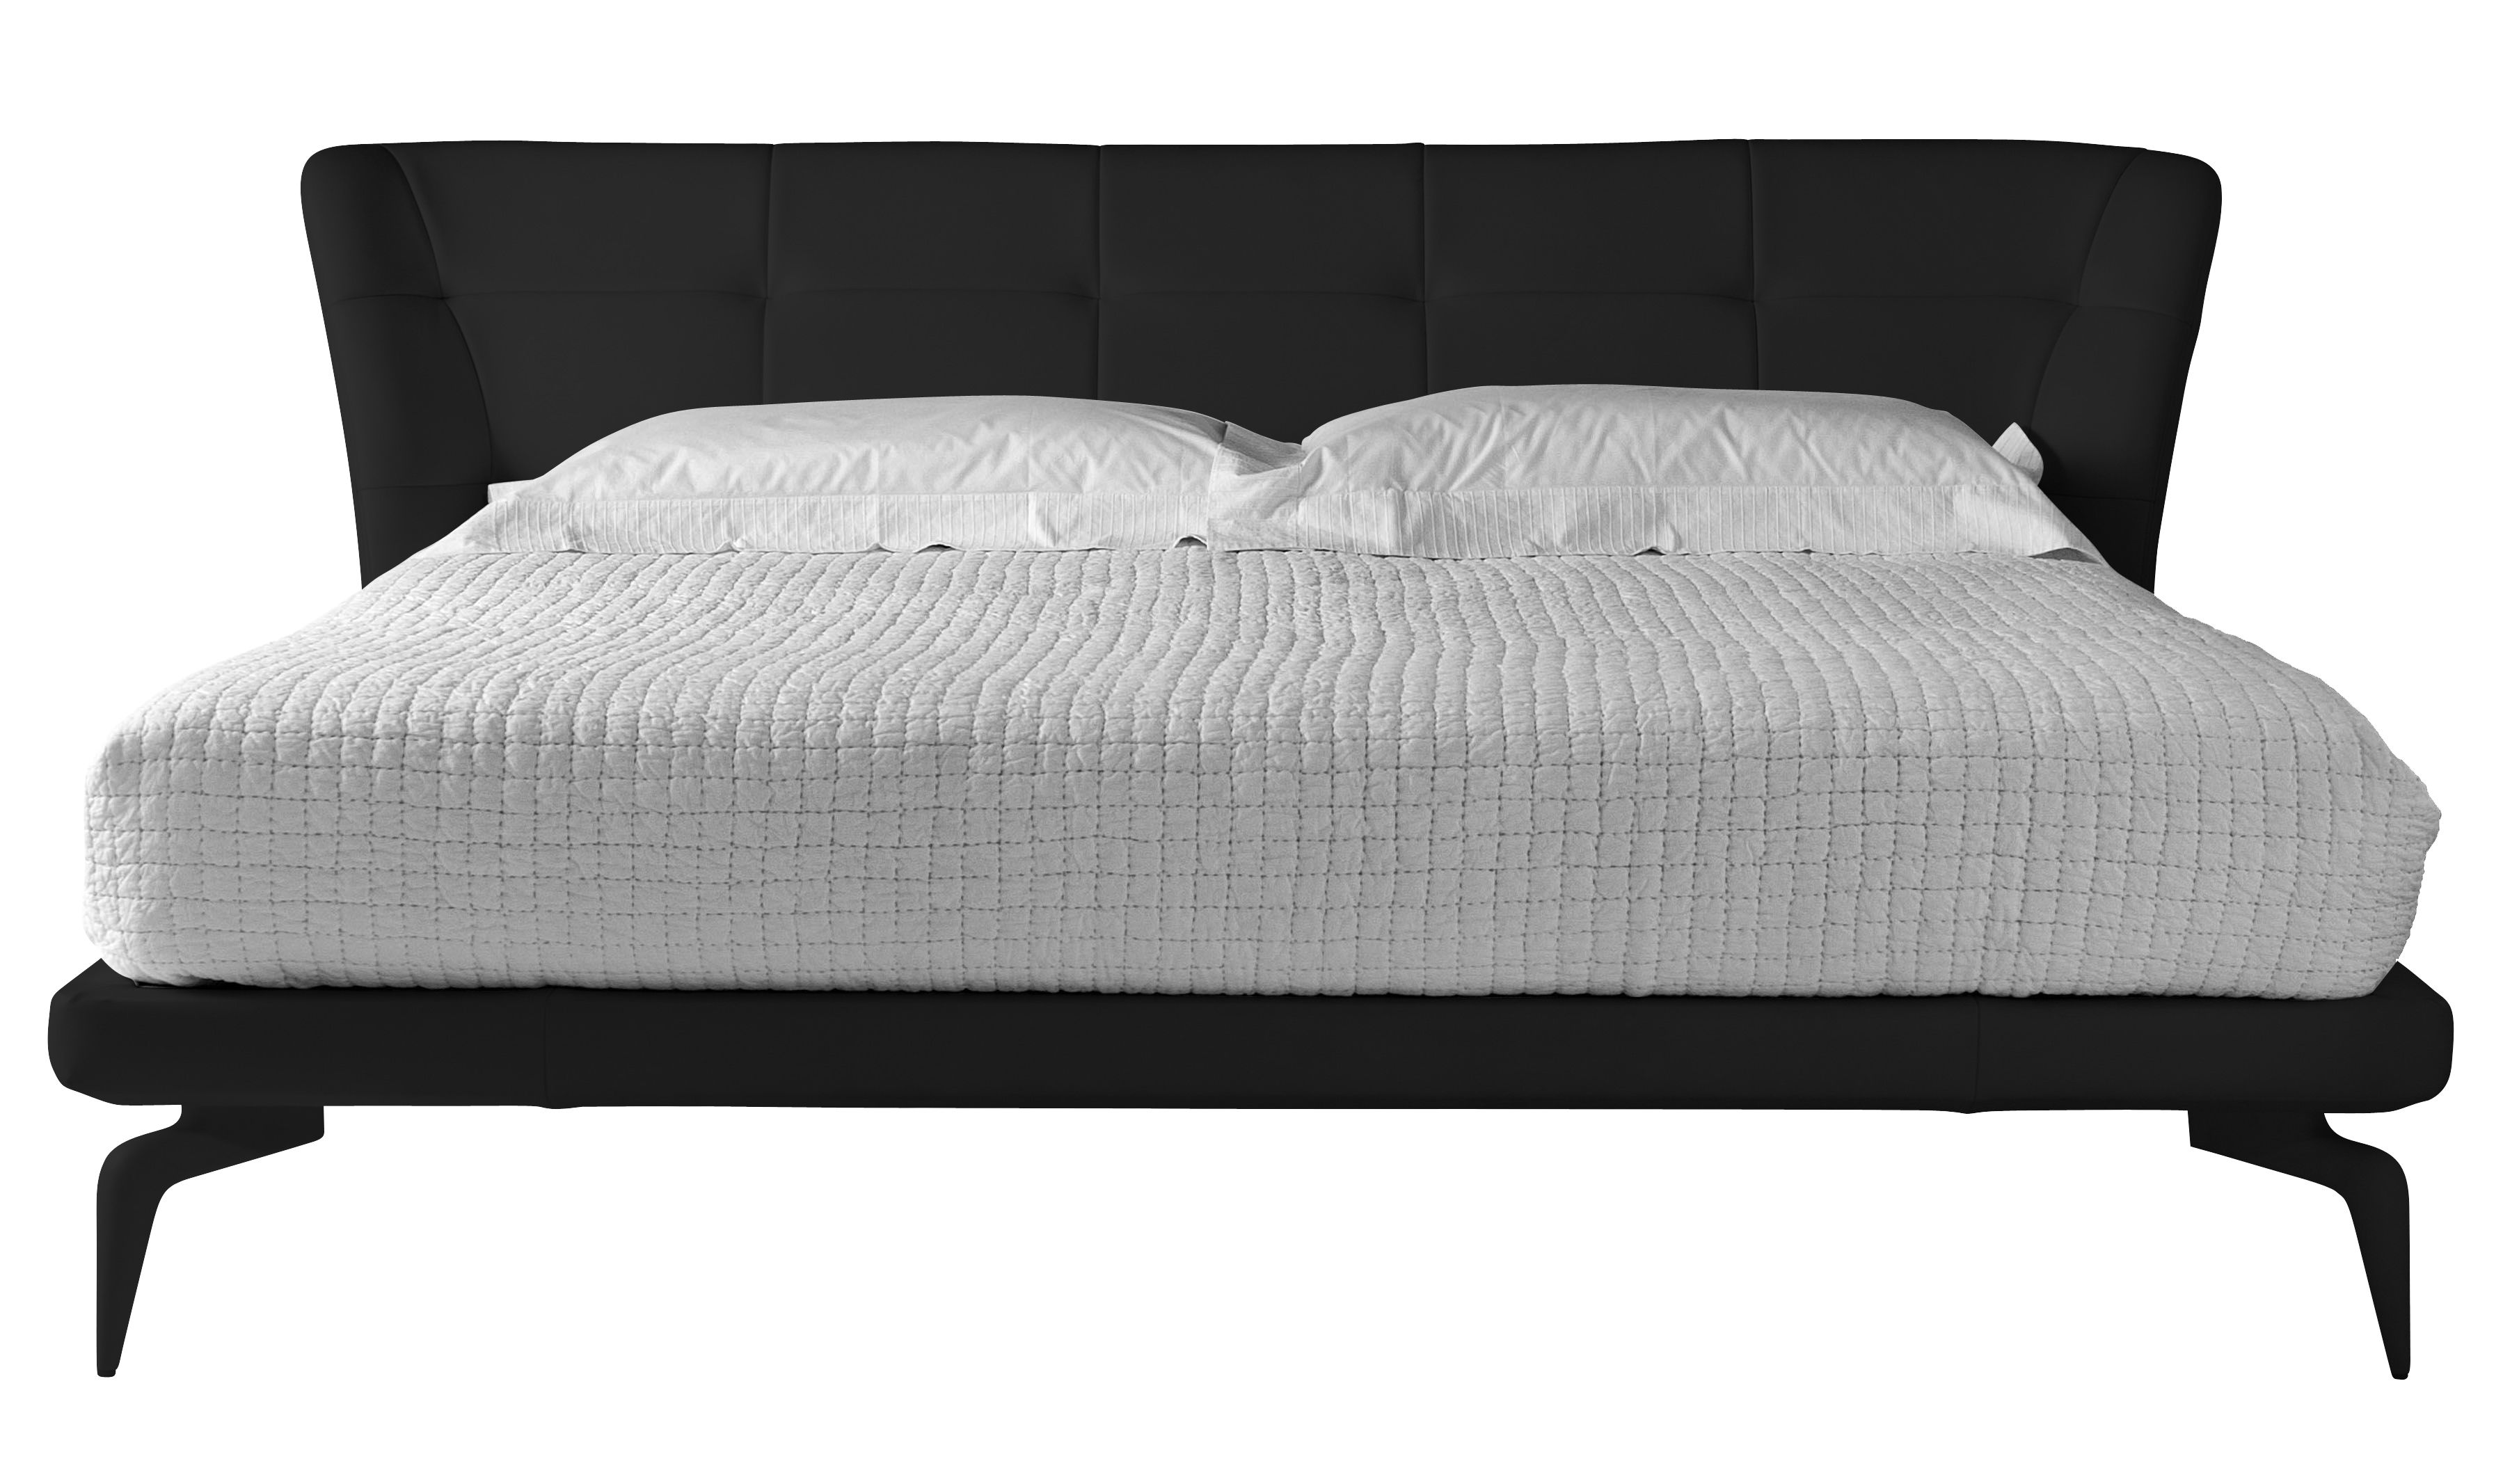 Furniture - Beds - Leeon Double bed - 2 seats by Driade - Black leather - Lacquered aluminium, Leather